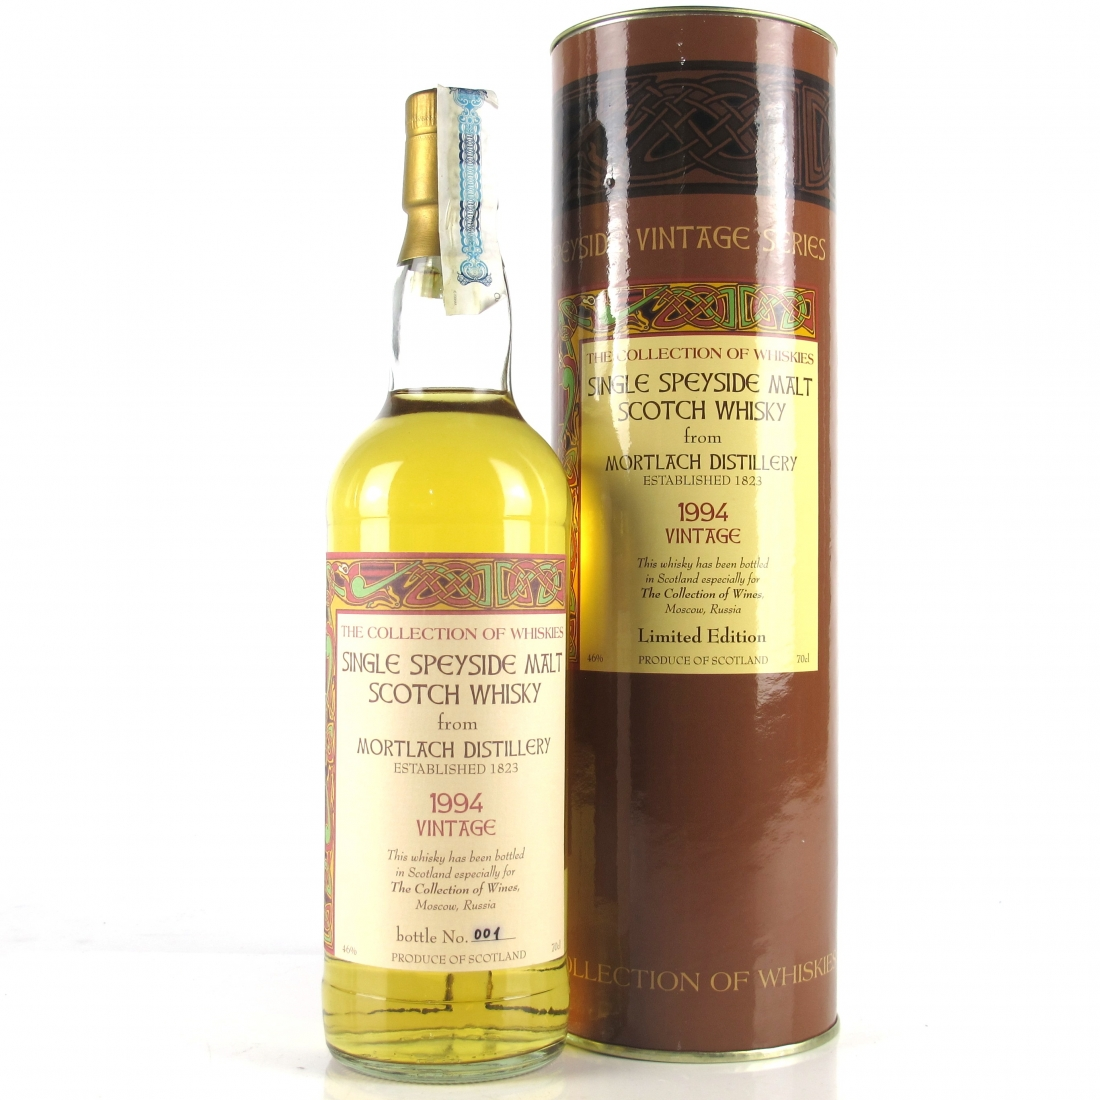 Mortlach 1994 The Collection of Whiskies